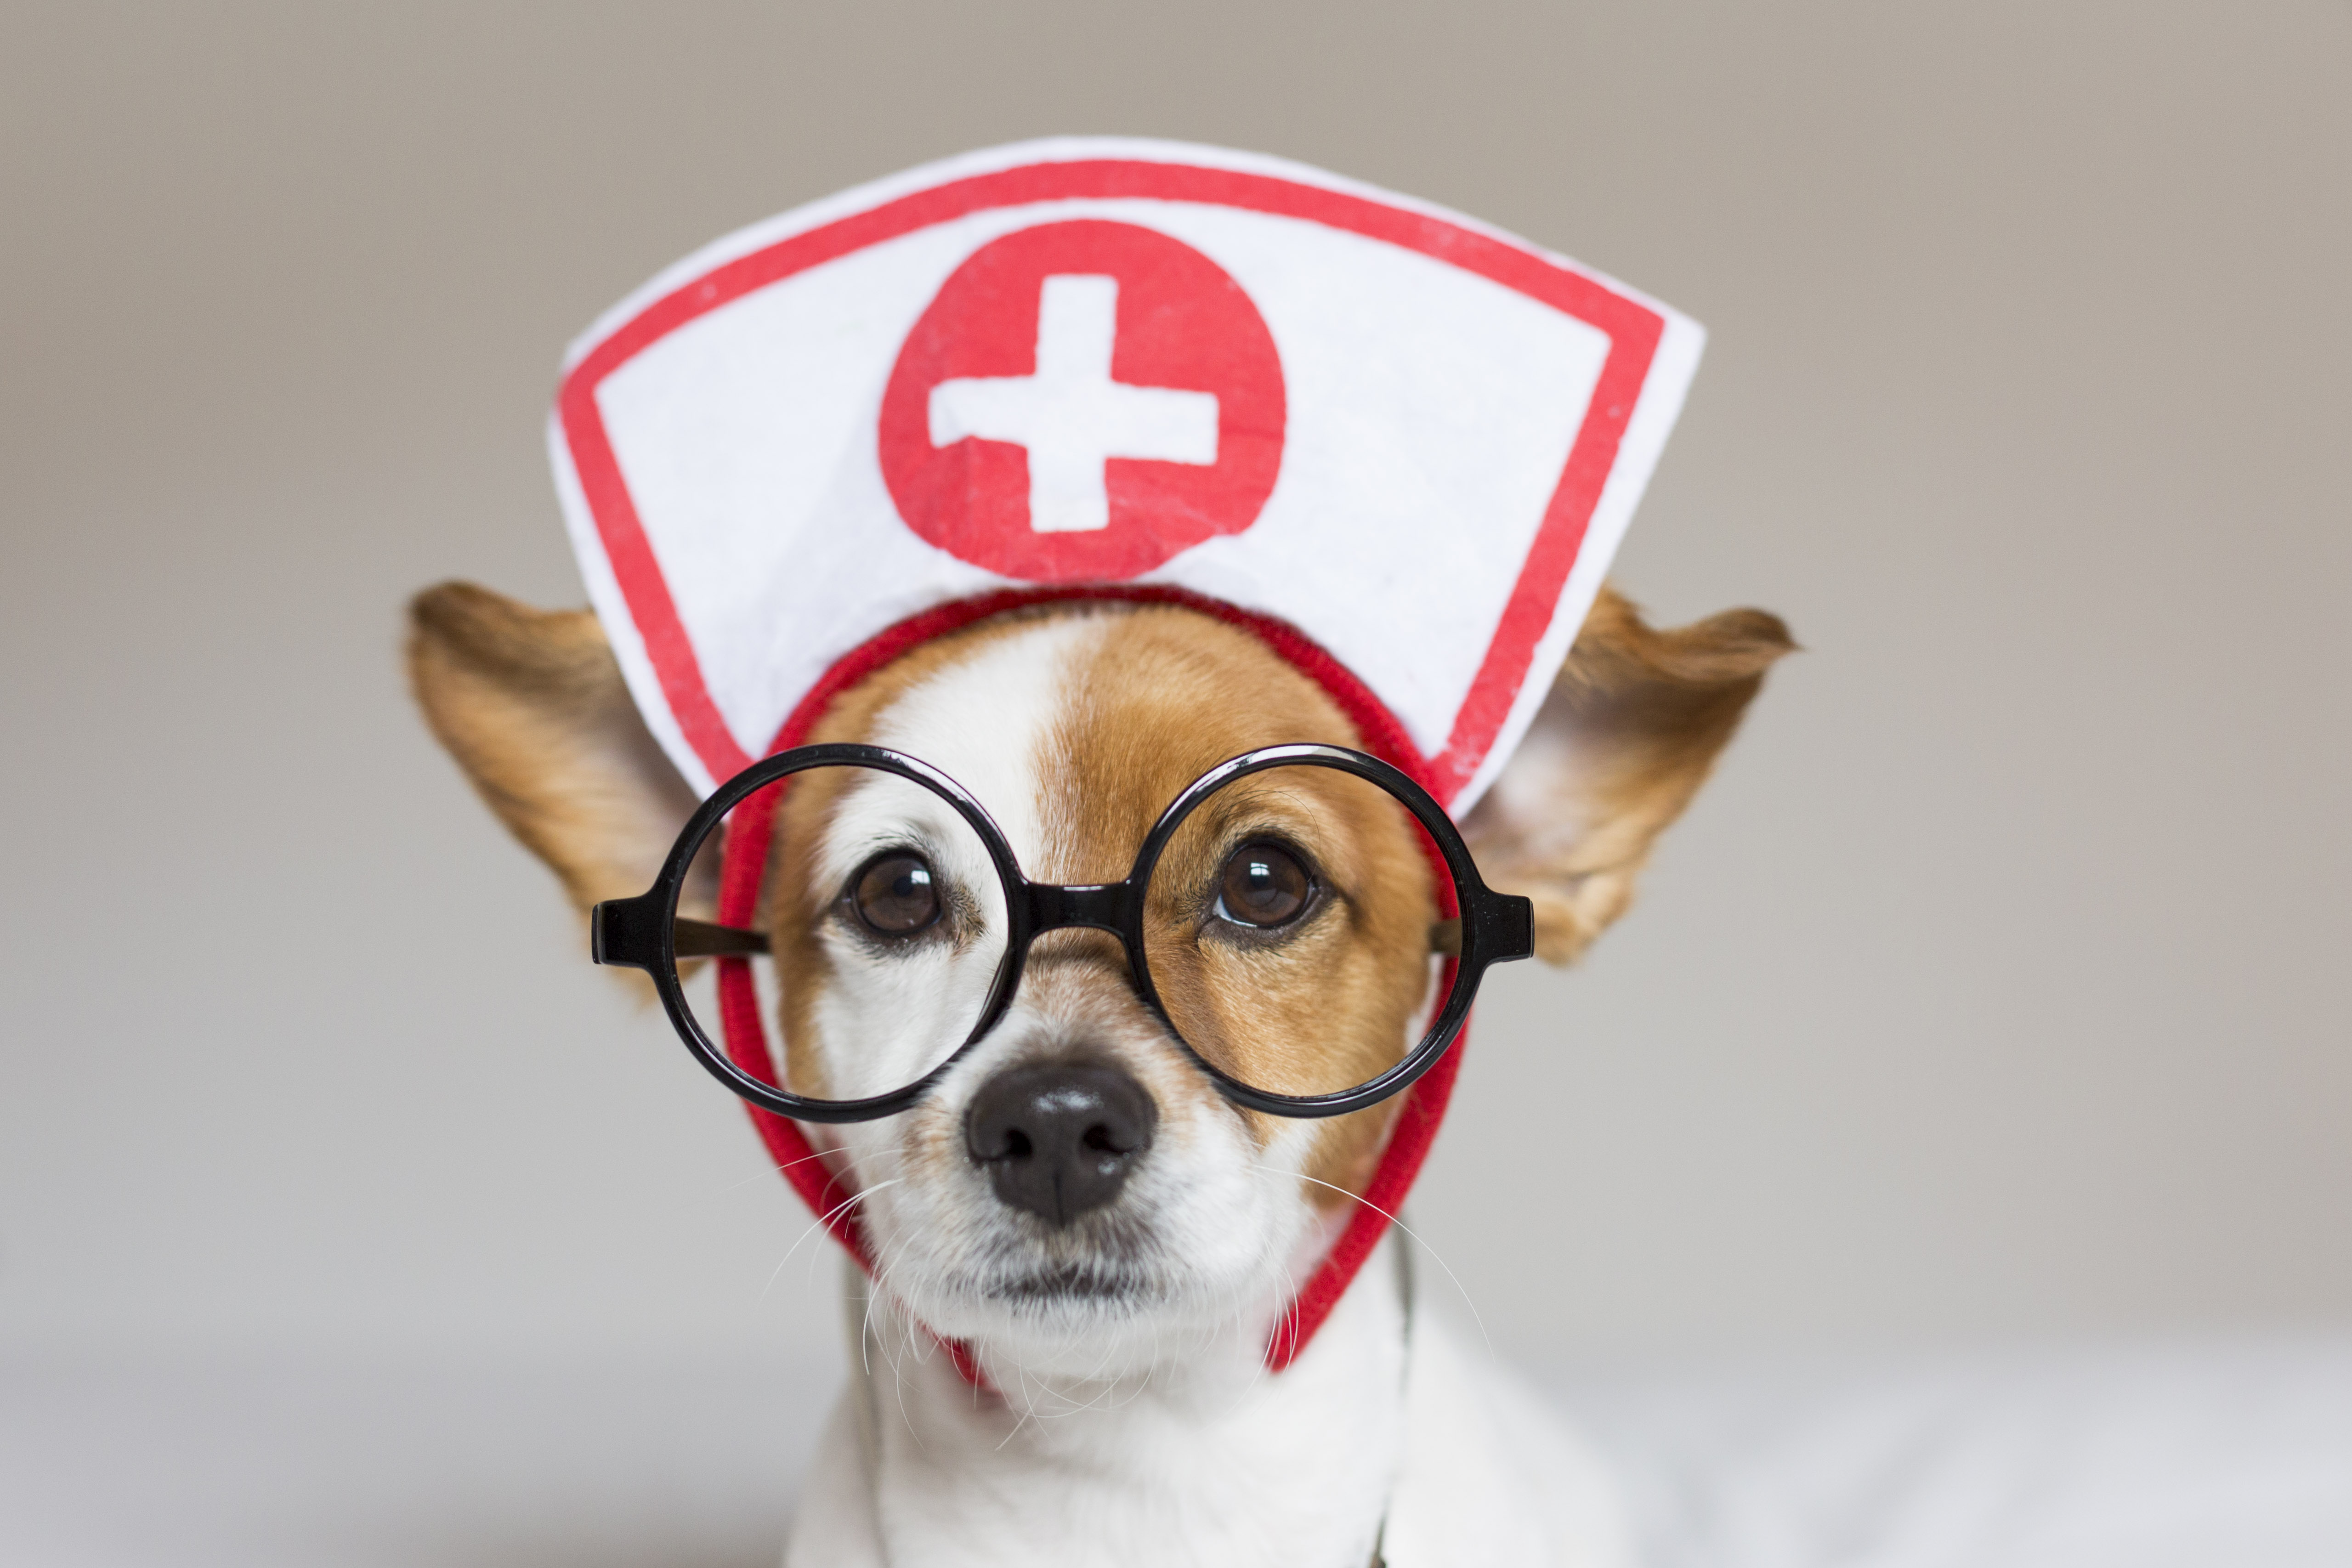 Portrait of a cute young small dog sitting on bed. Wearing stethoscope and glasses. He looks like a doctor or a vet. Home, indoors or studio. White background.